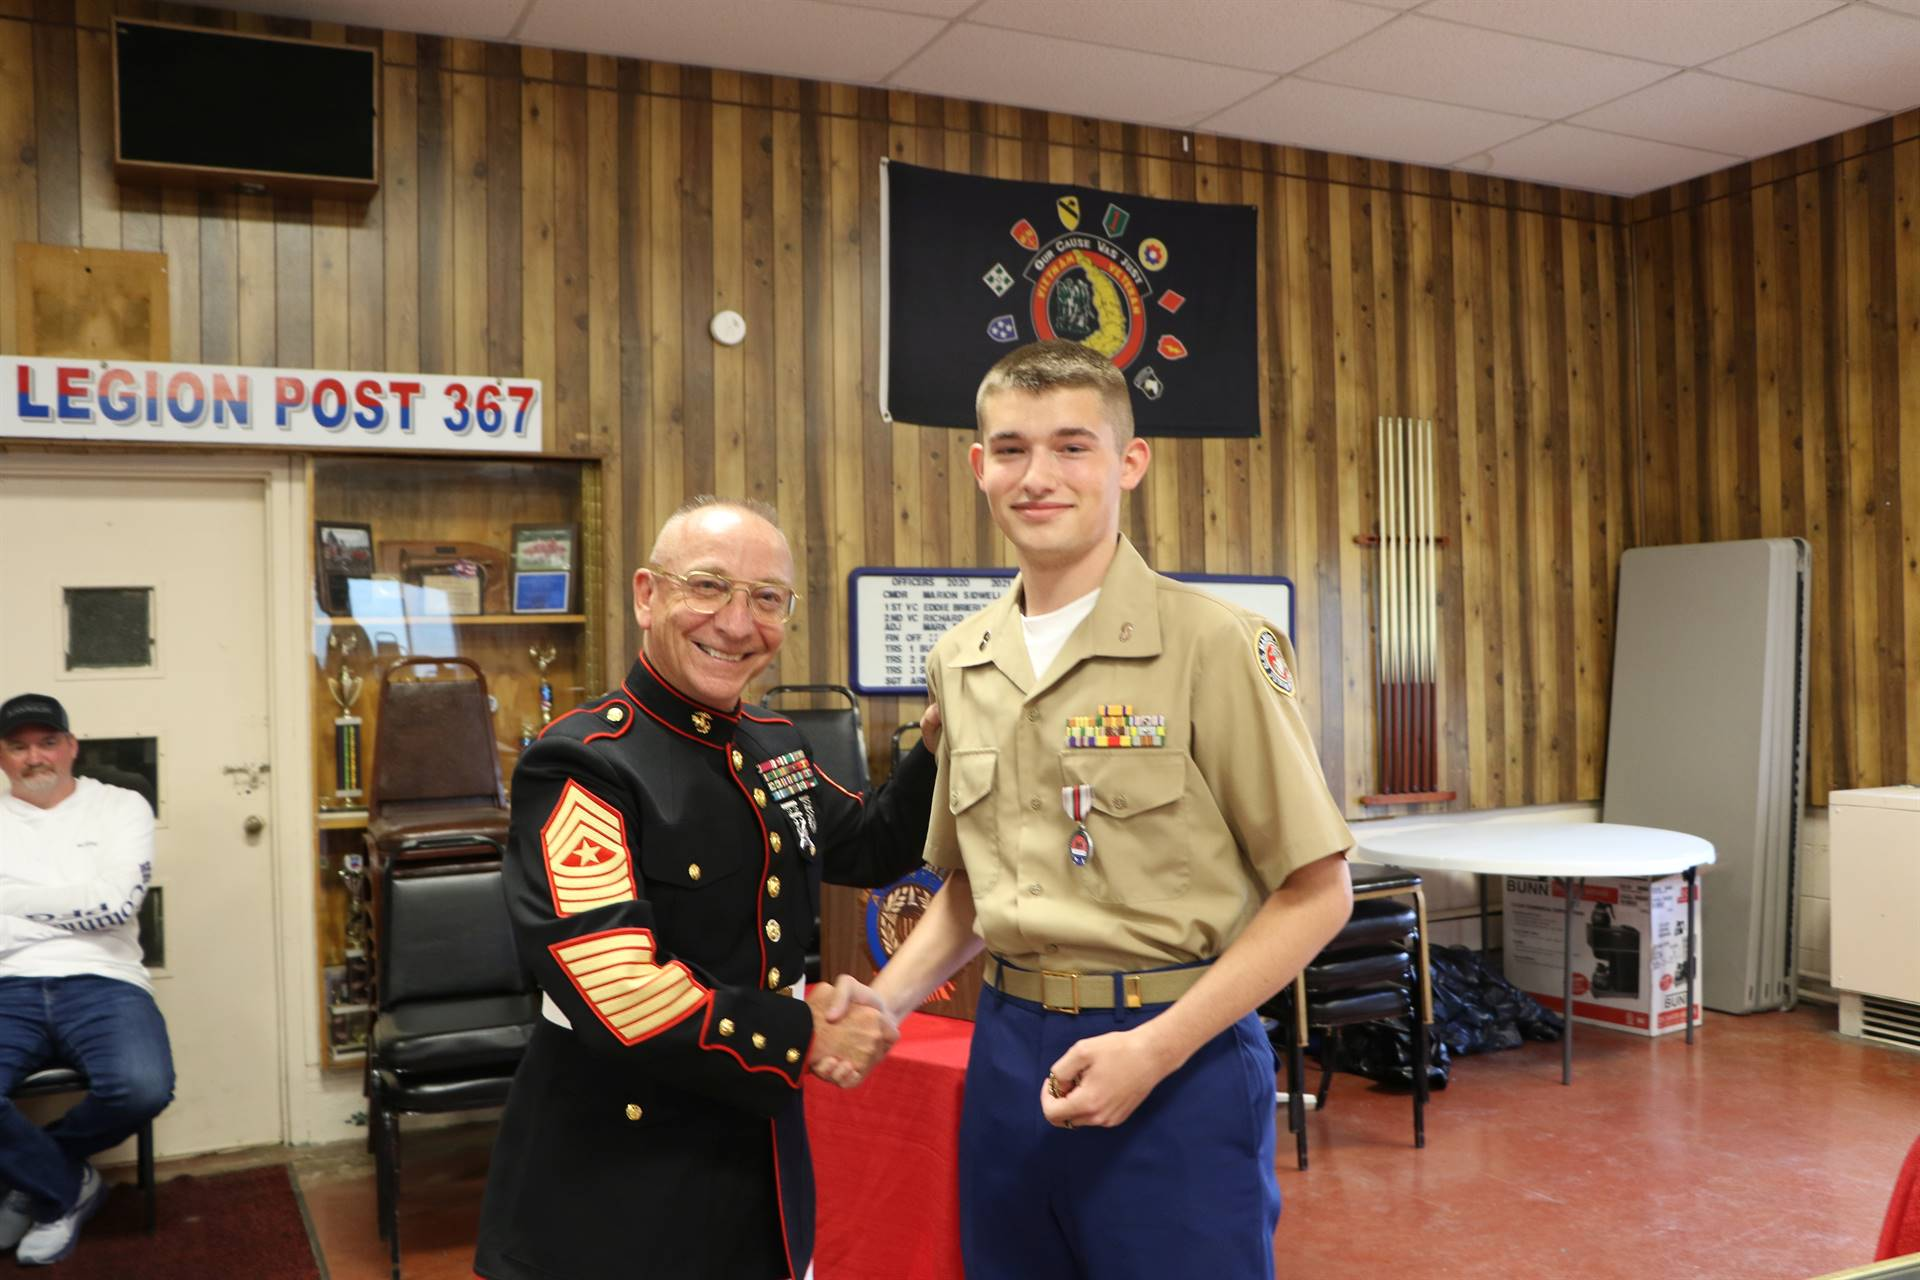 Cadet Timothy Scarberry receives the American Veteran's Award